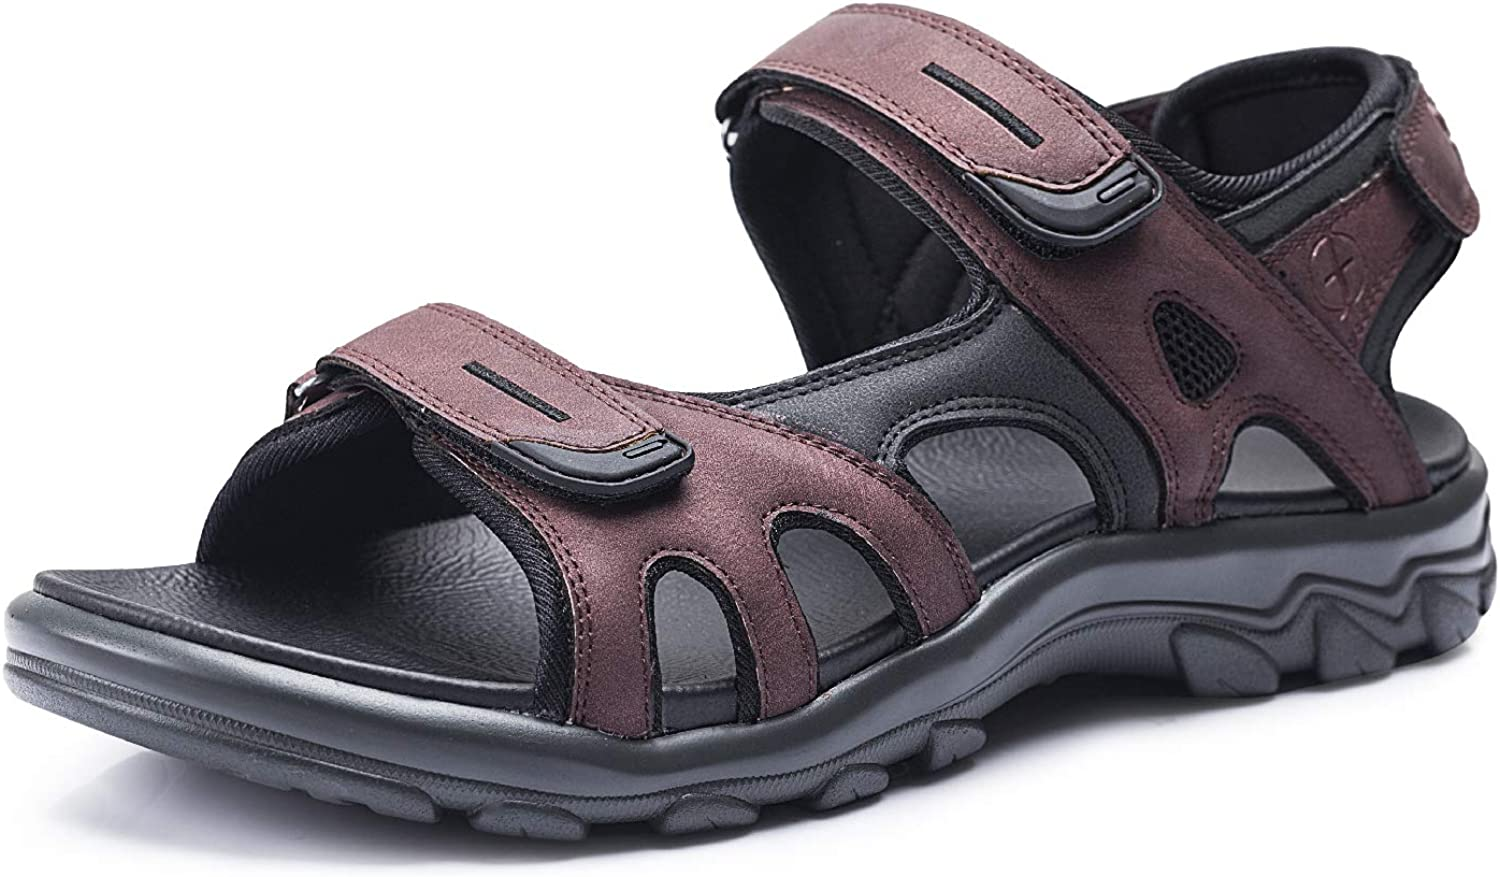 Men Topics on TV Women's Sandals Adjustable Straps Arch Popular popular Support with Open To